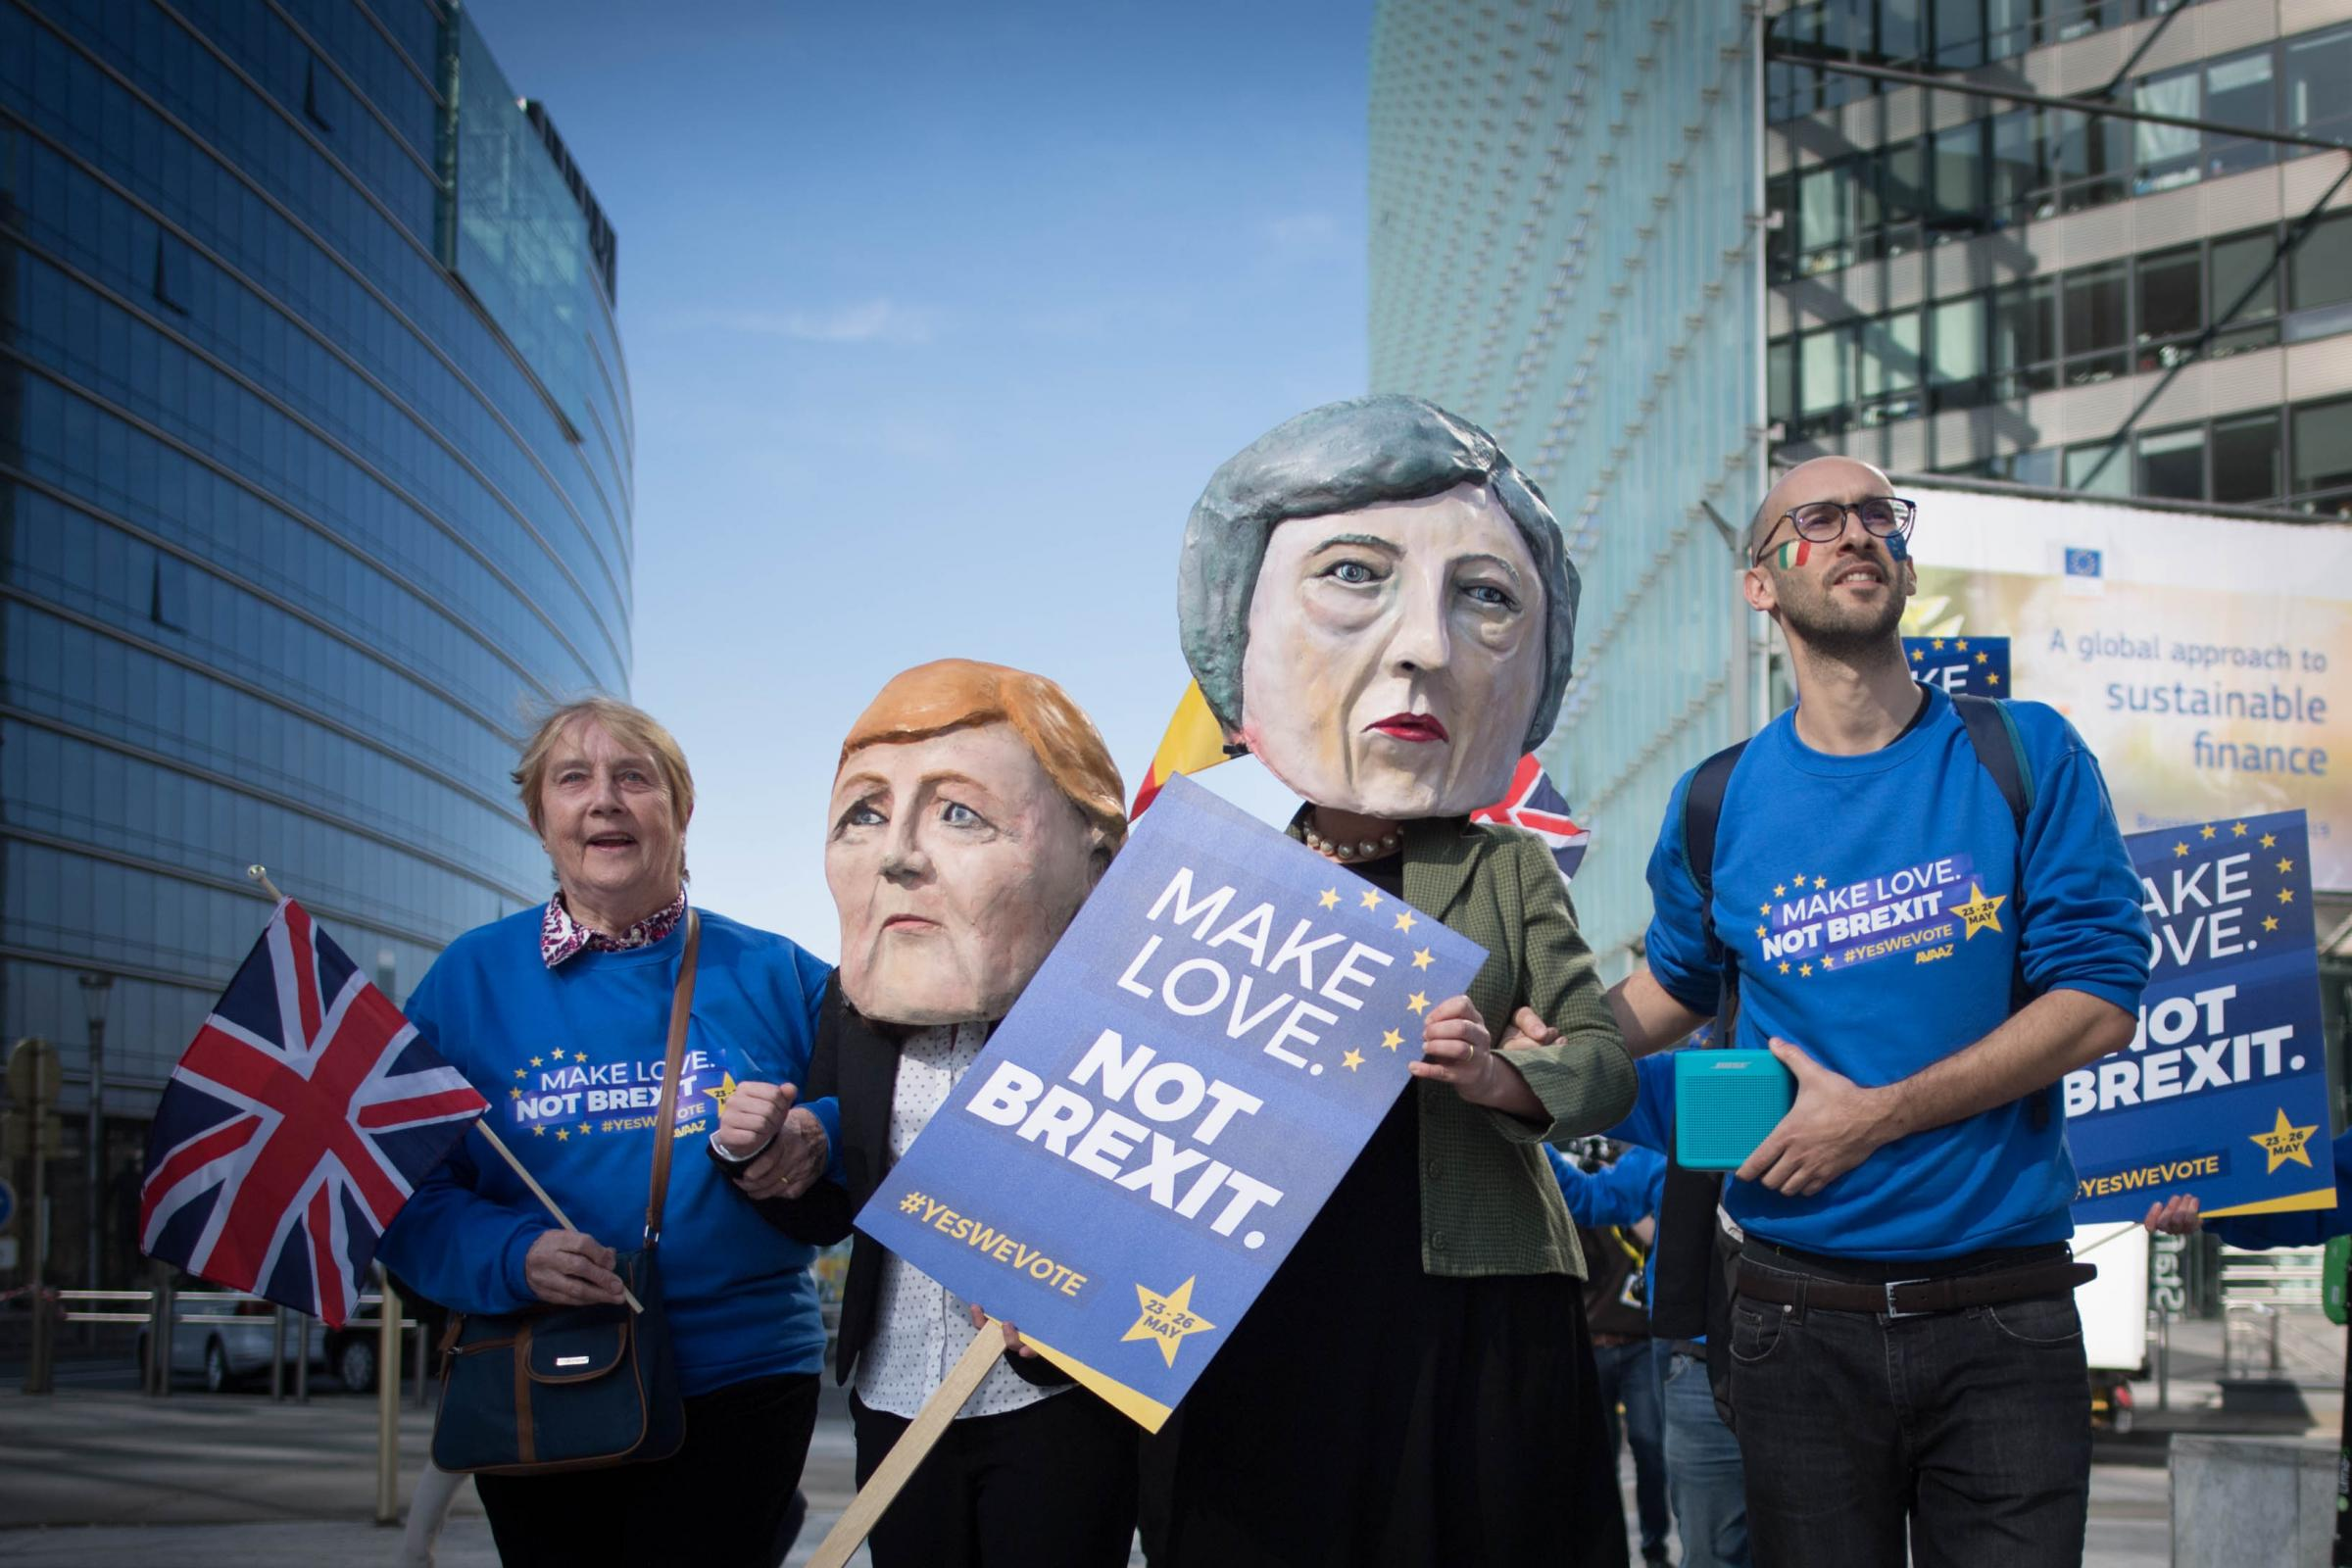 Anti Brexit  protesters dressed as Theresa May and Angela Merkel outside the EU Commission in Brussels ahead of the European Leaders' summit at which Prime Minister Theresa May will be asking for an extension to Brexit. PRESS ASSOCIATION Photo. Pictur